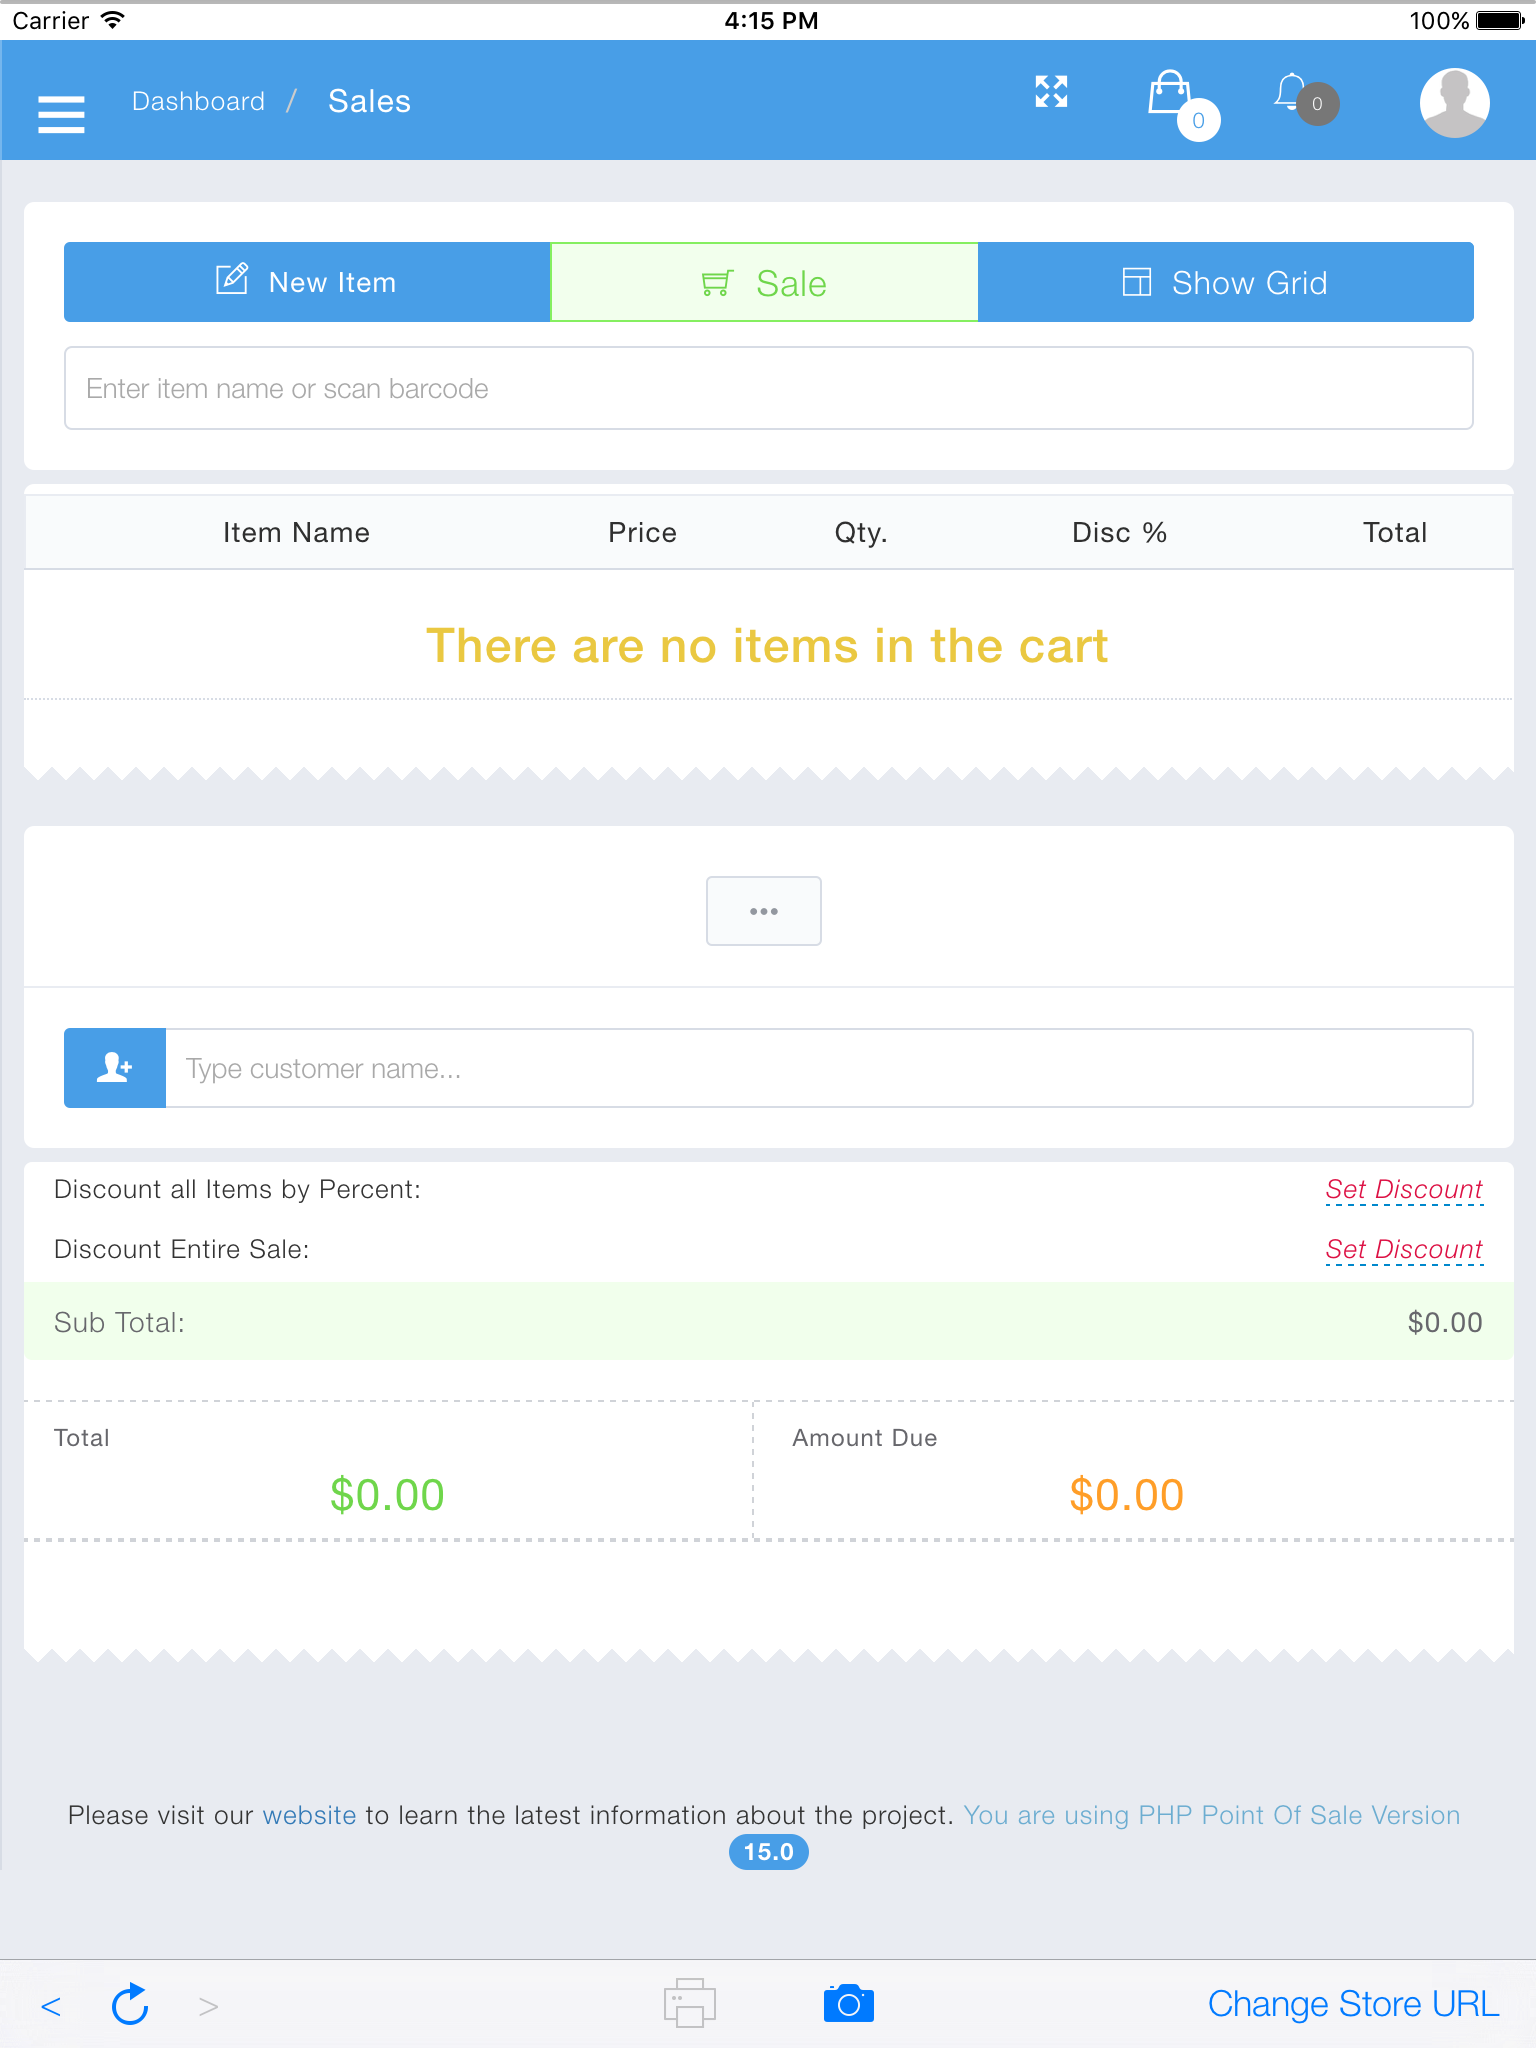 PHP Point of Sale Software - Sale view 1